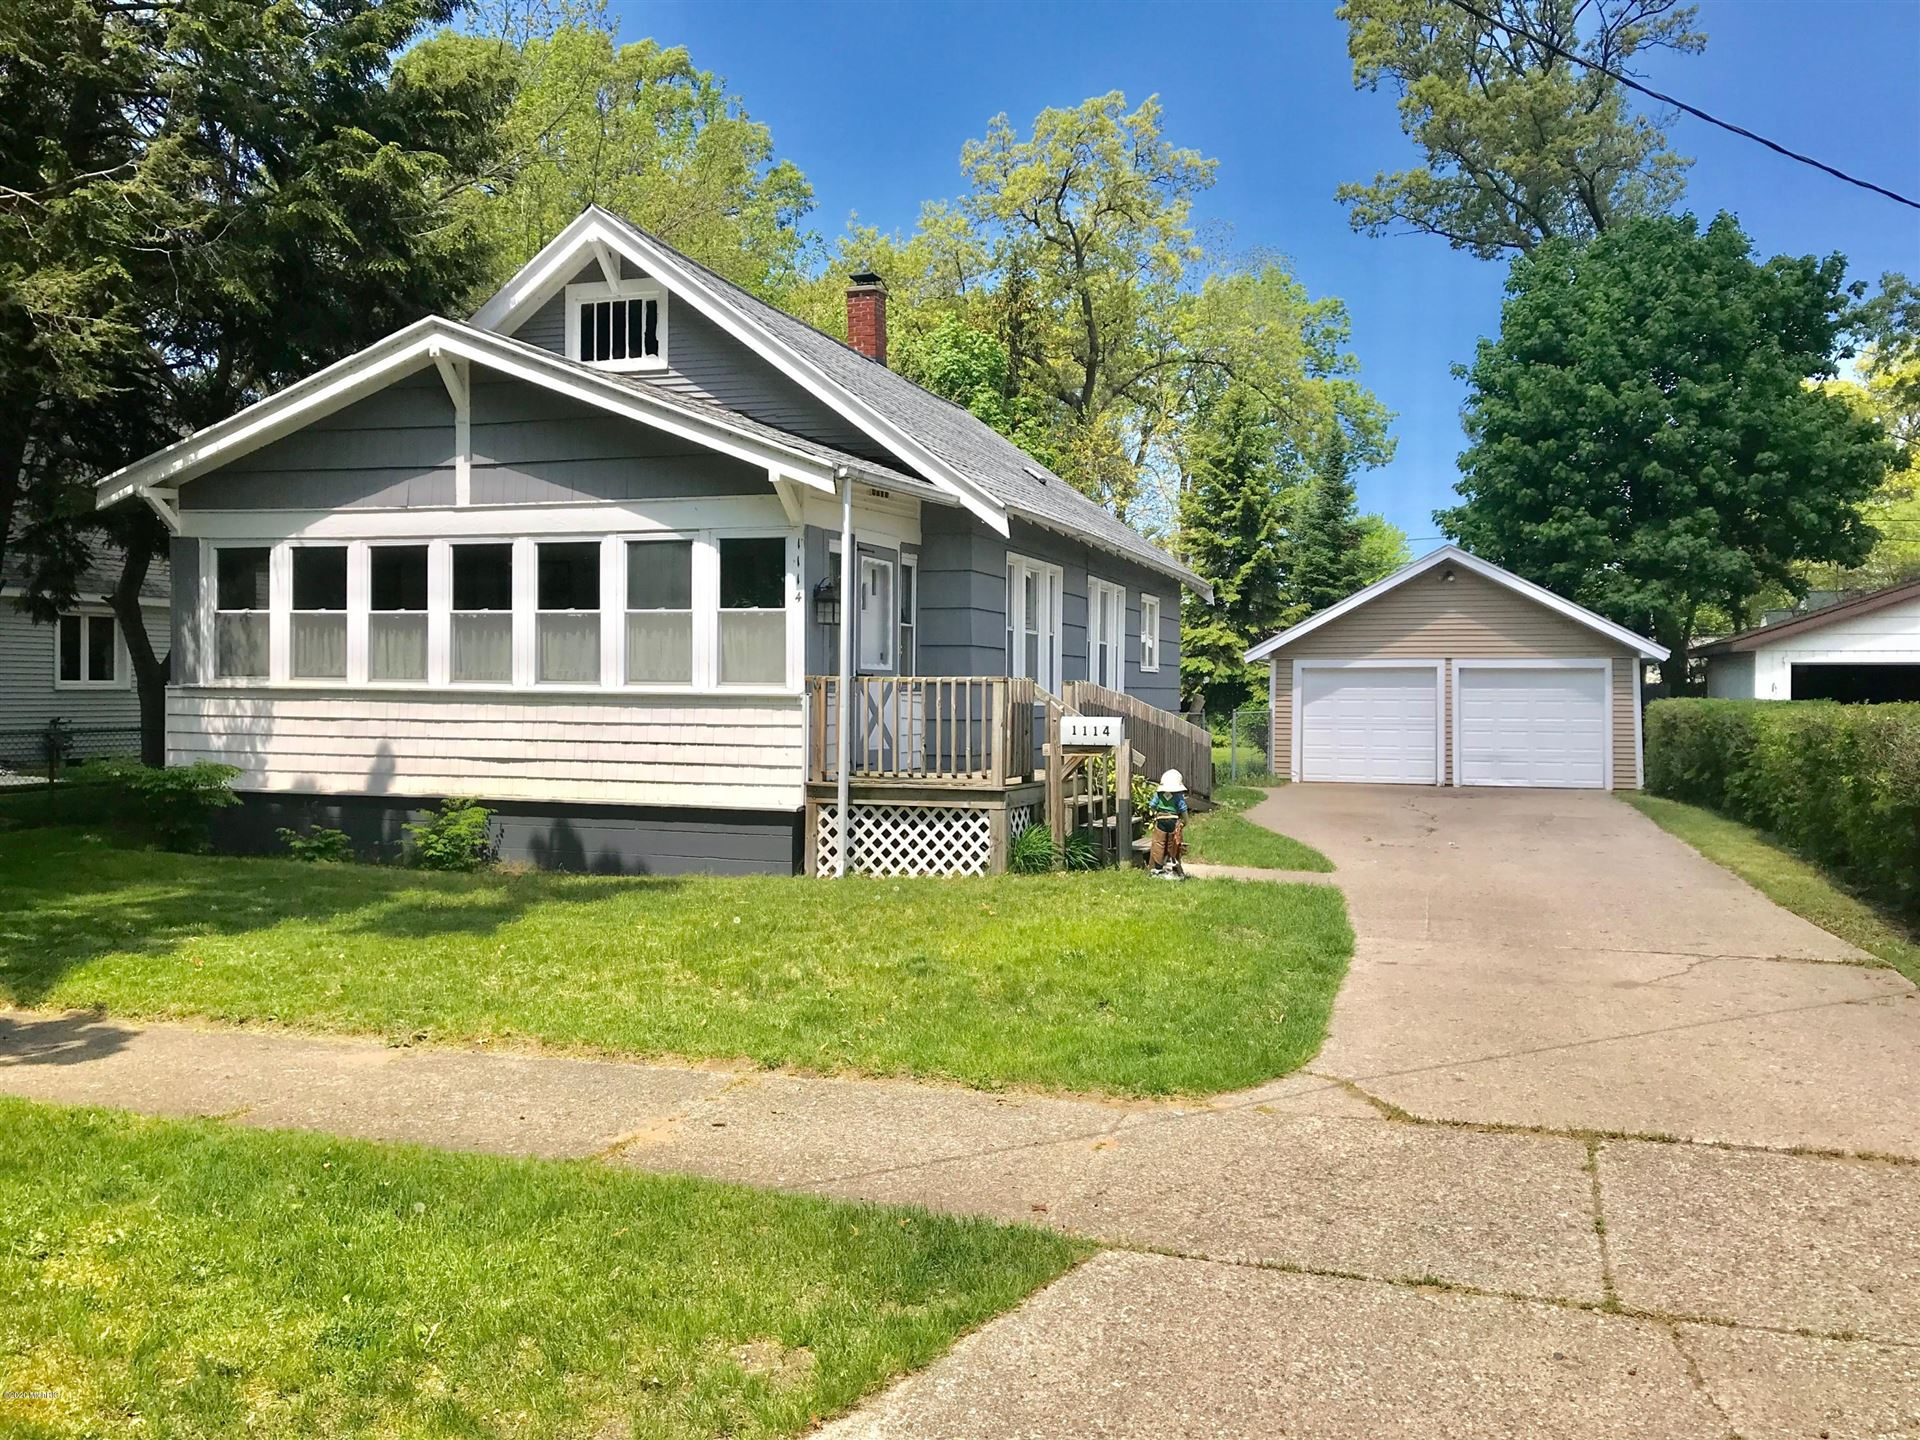 1114 Mills Avenue, North Muskegon, MI 49445 - MLS#: 20018636